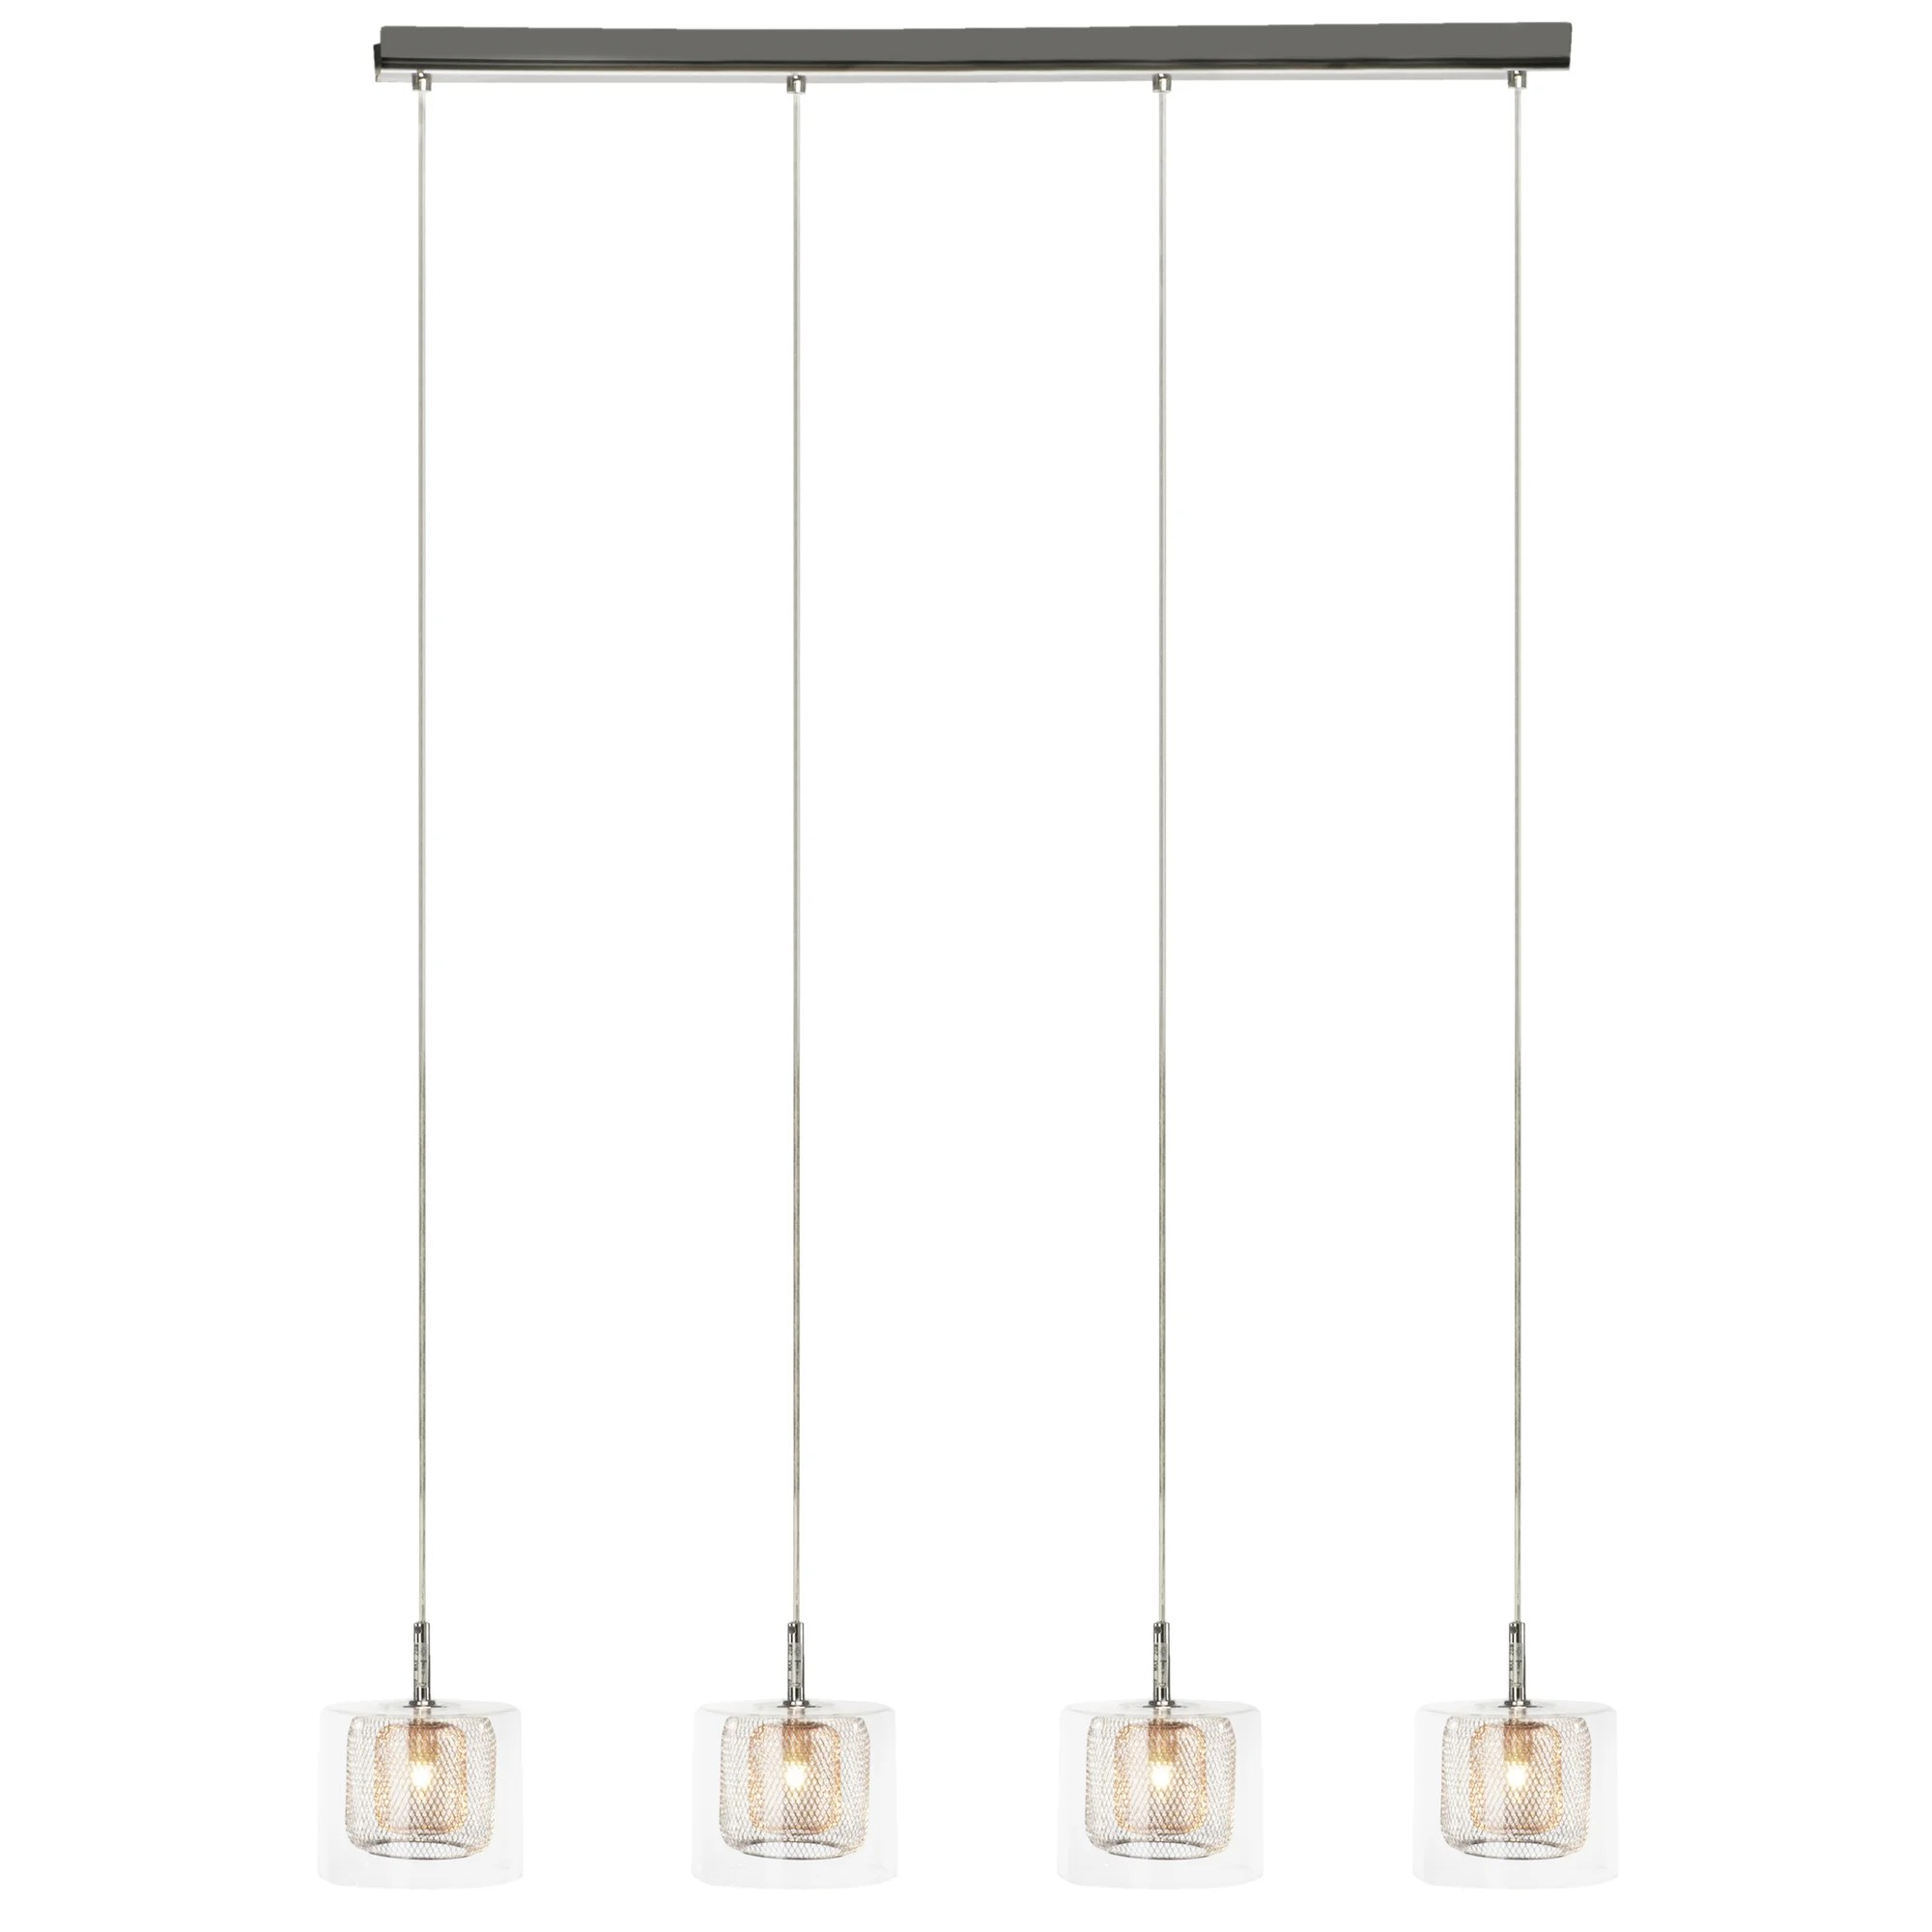 Balken Pendelleuchte Prestington Balken Pendelleuchte 4 Flammig Magic Wayfair De